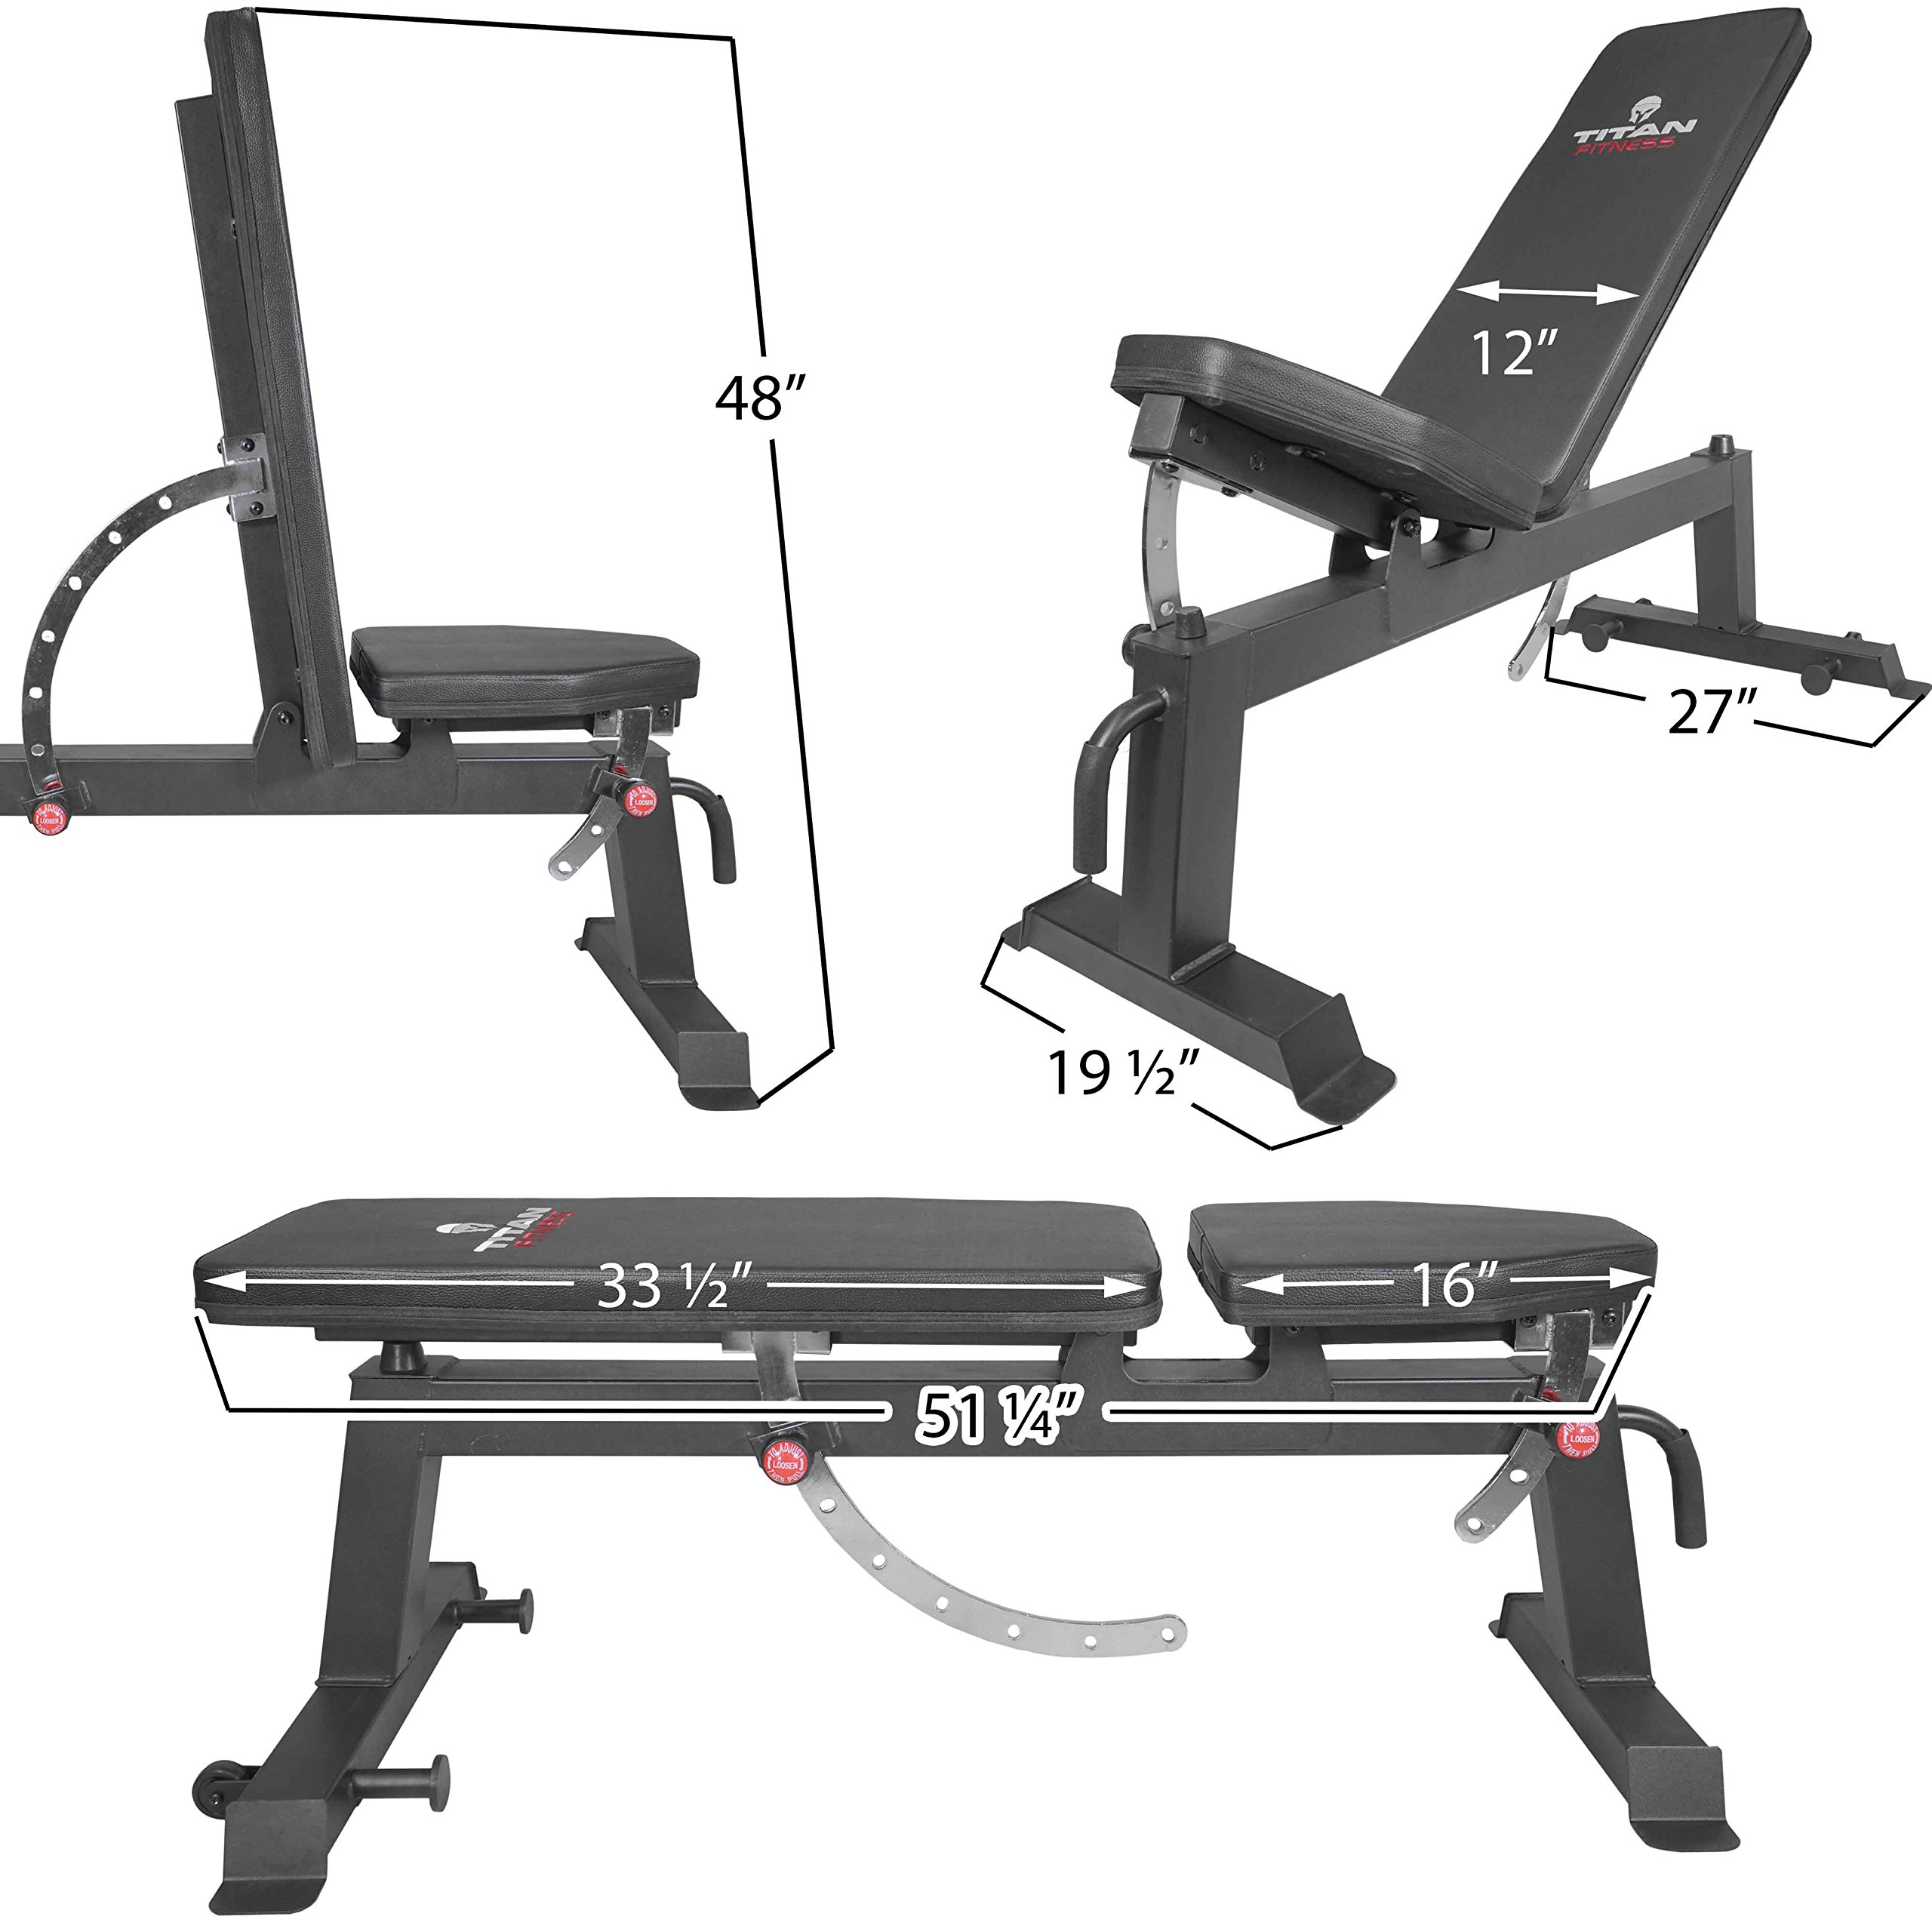 Titan Fitness Adjustable Flat Incline Weight Bench 650 lb Rated Capacity by Titan Fitness (Image #2)